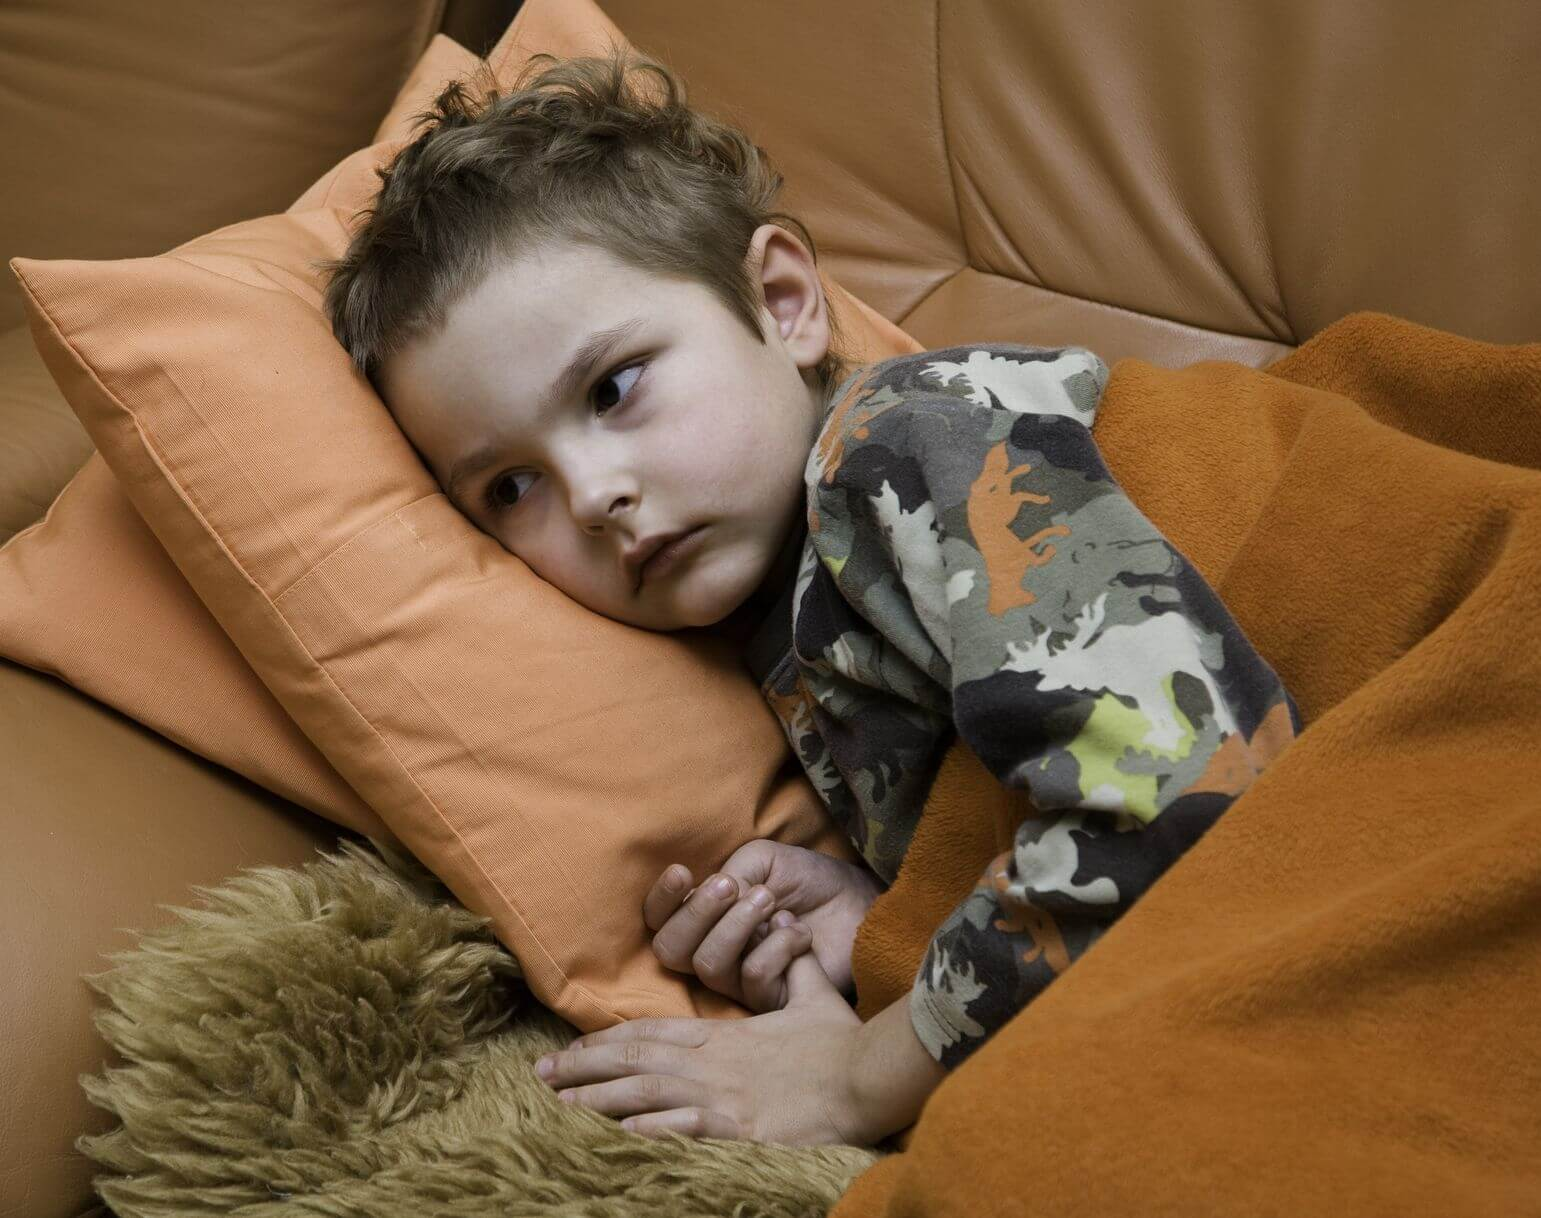 Child sick at home